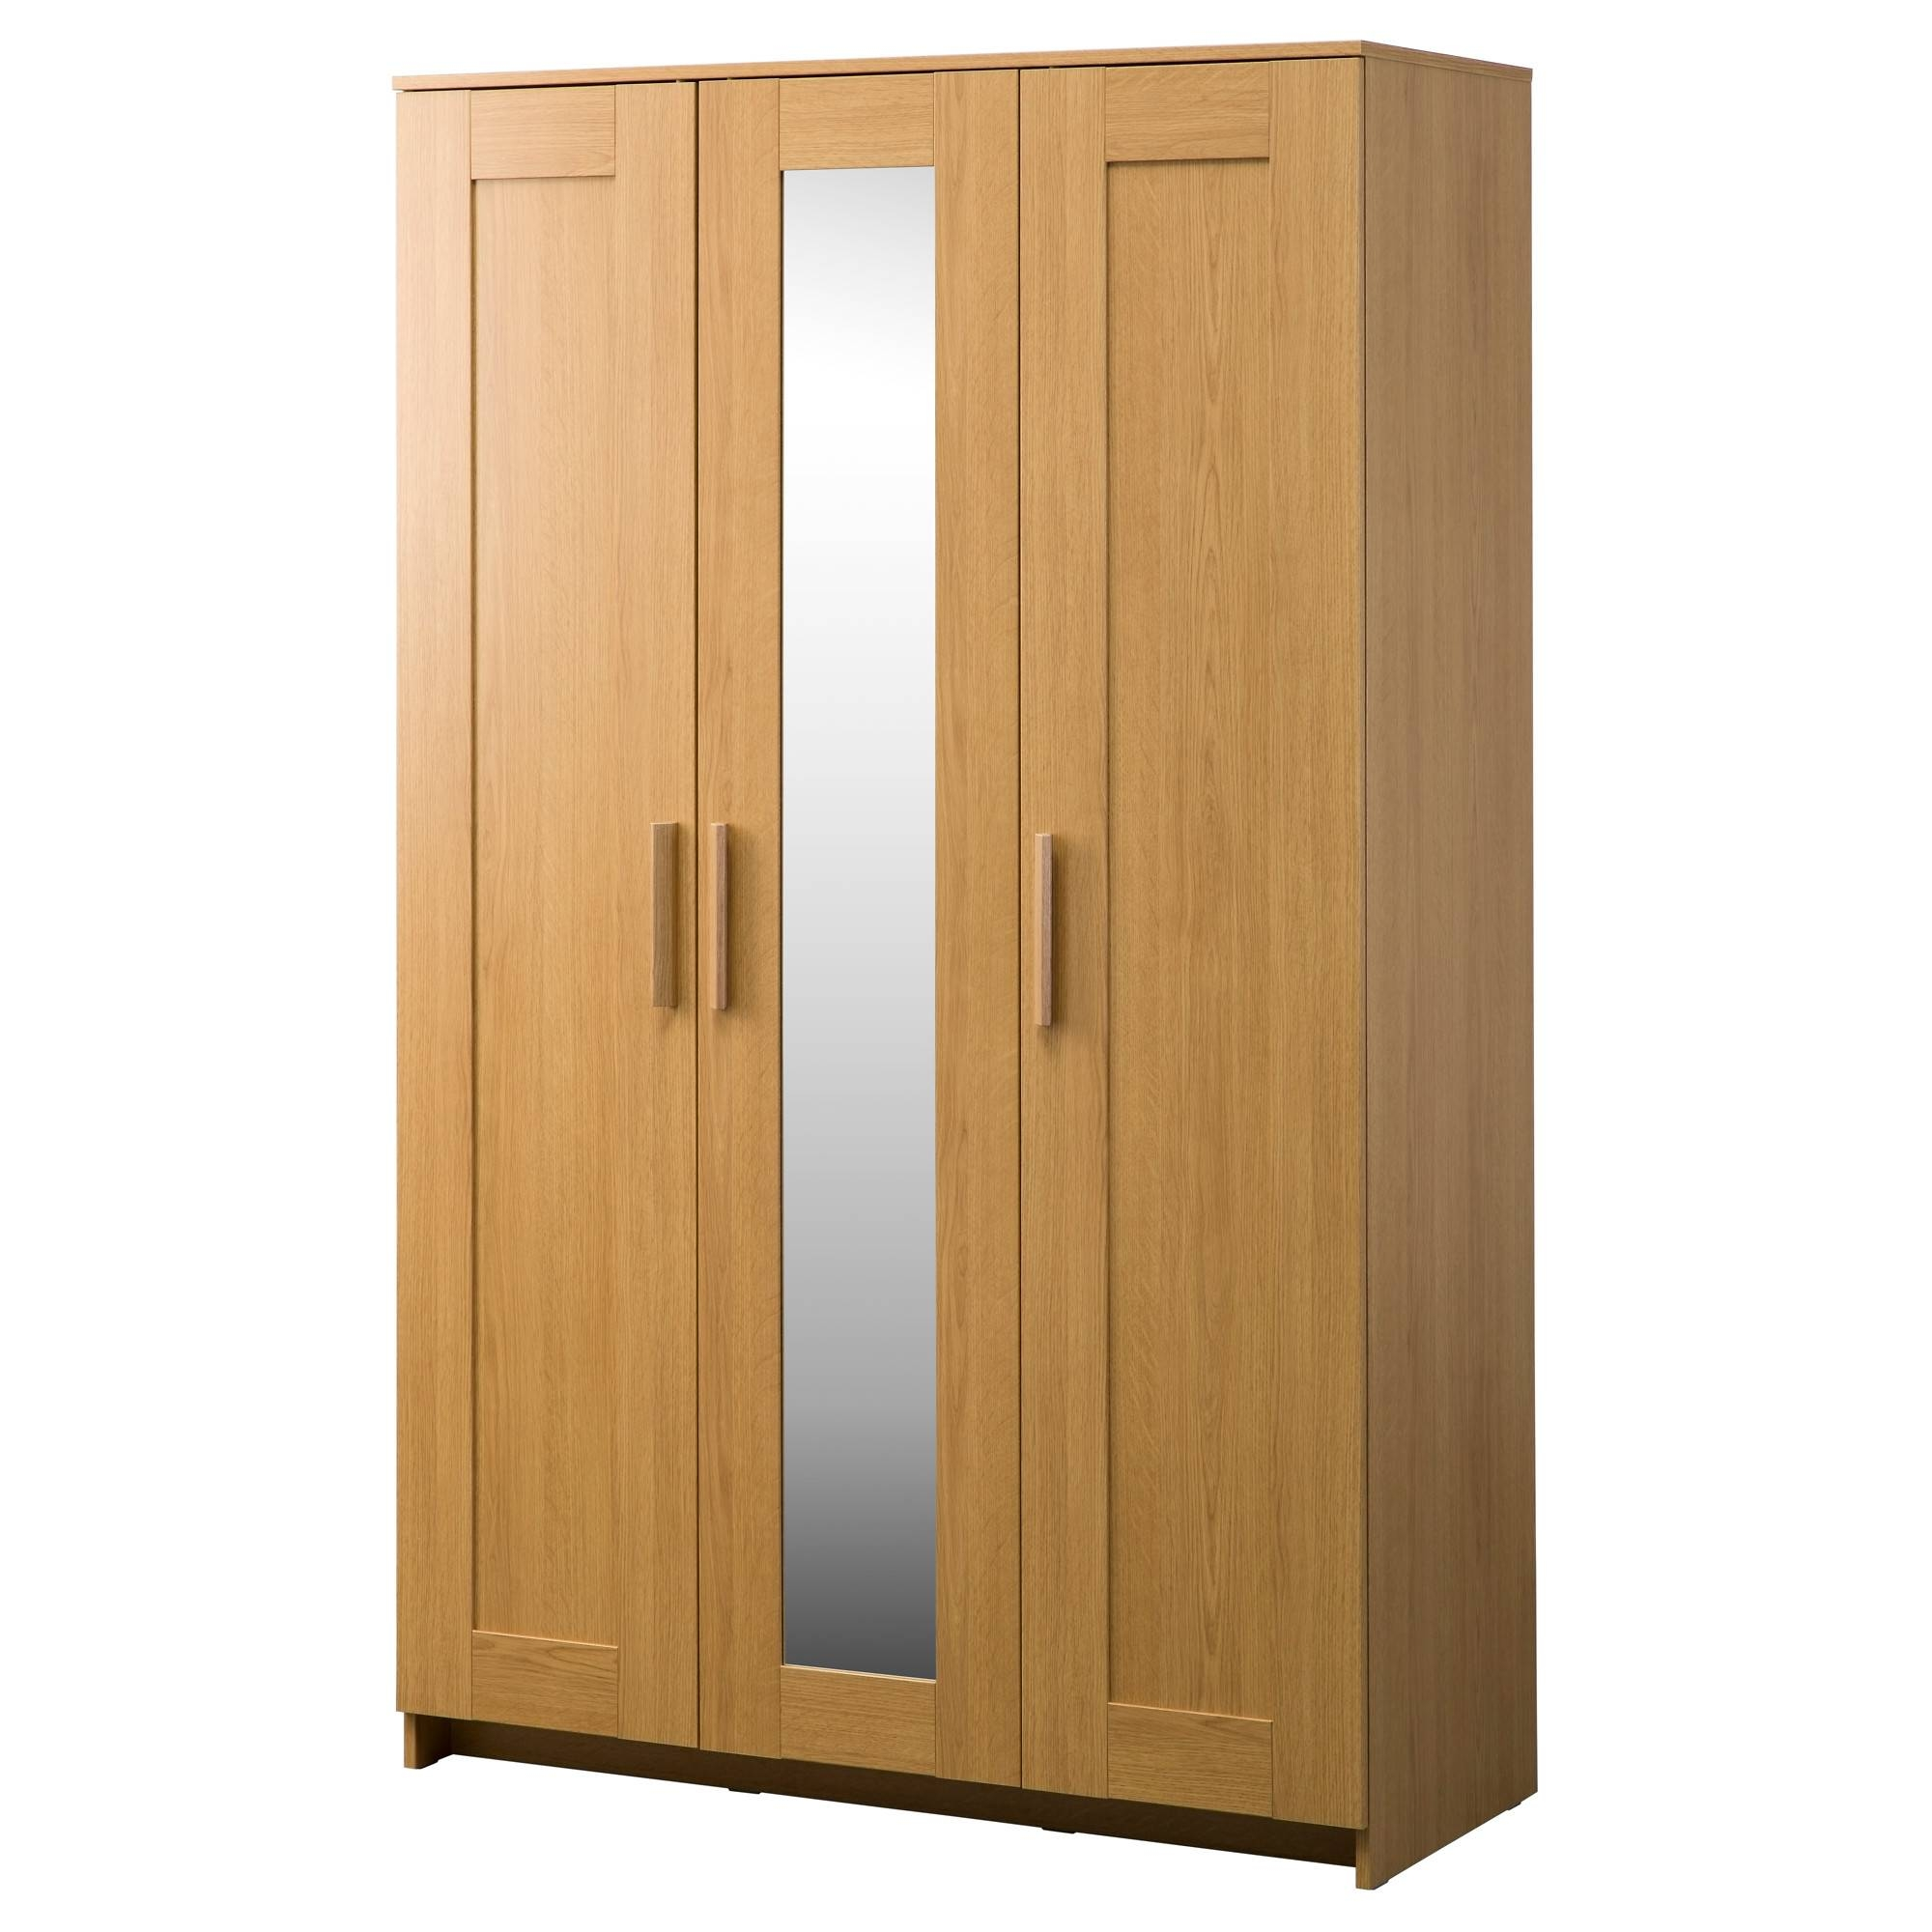 Wardrobes | Ikea pertaining to Cheap Mirrored Wardrobes (Image 11 of 15)